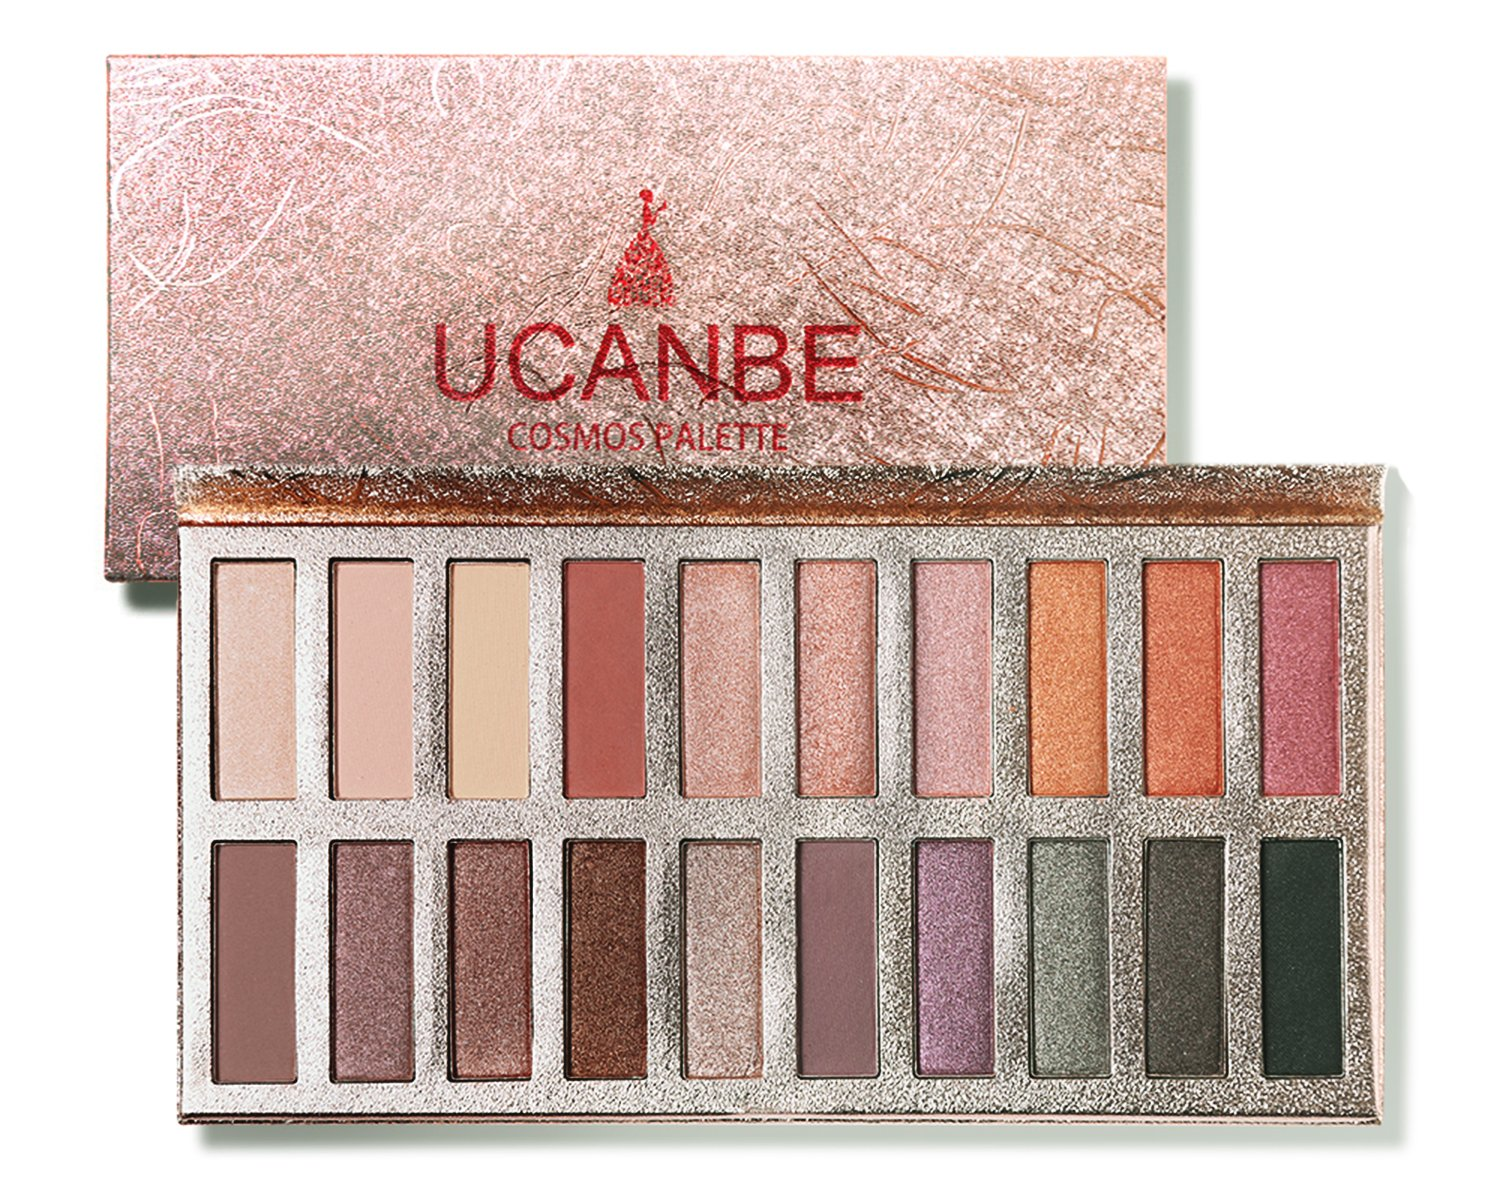 Ucanbe Glittering Cosmos Eye shadow Palette Pro 20 Eyeshadows High Pigmented & Long Wear, Matte + Shimmer Shades for Natural Nude Smoke Makeup (Naked)